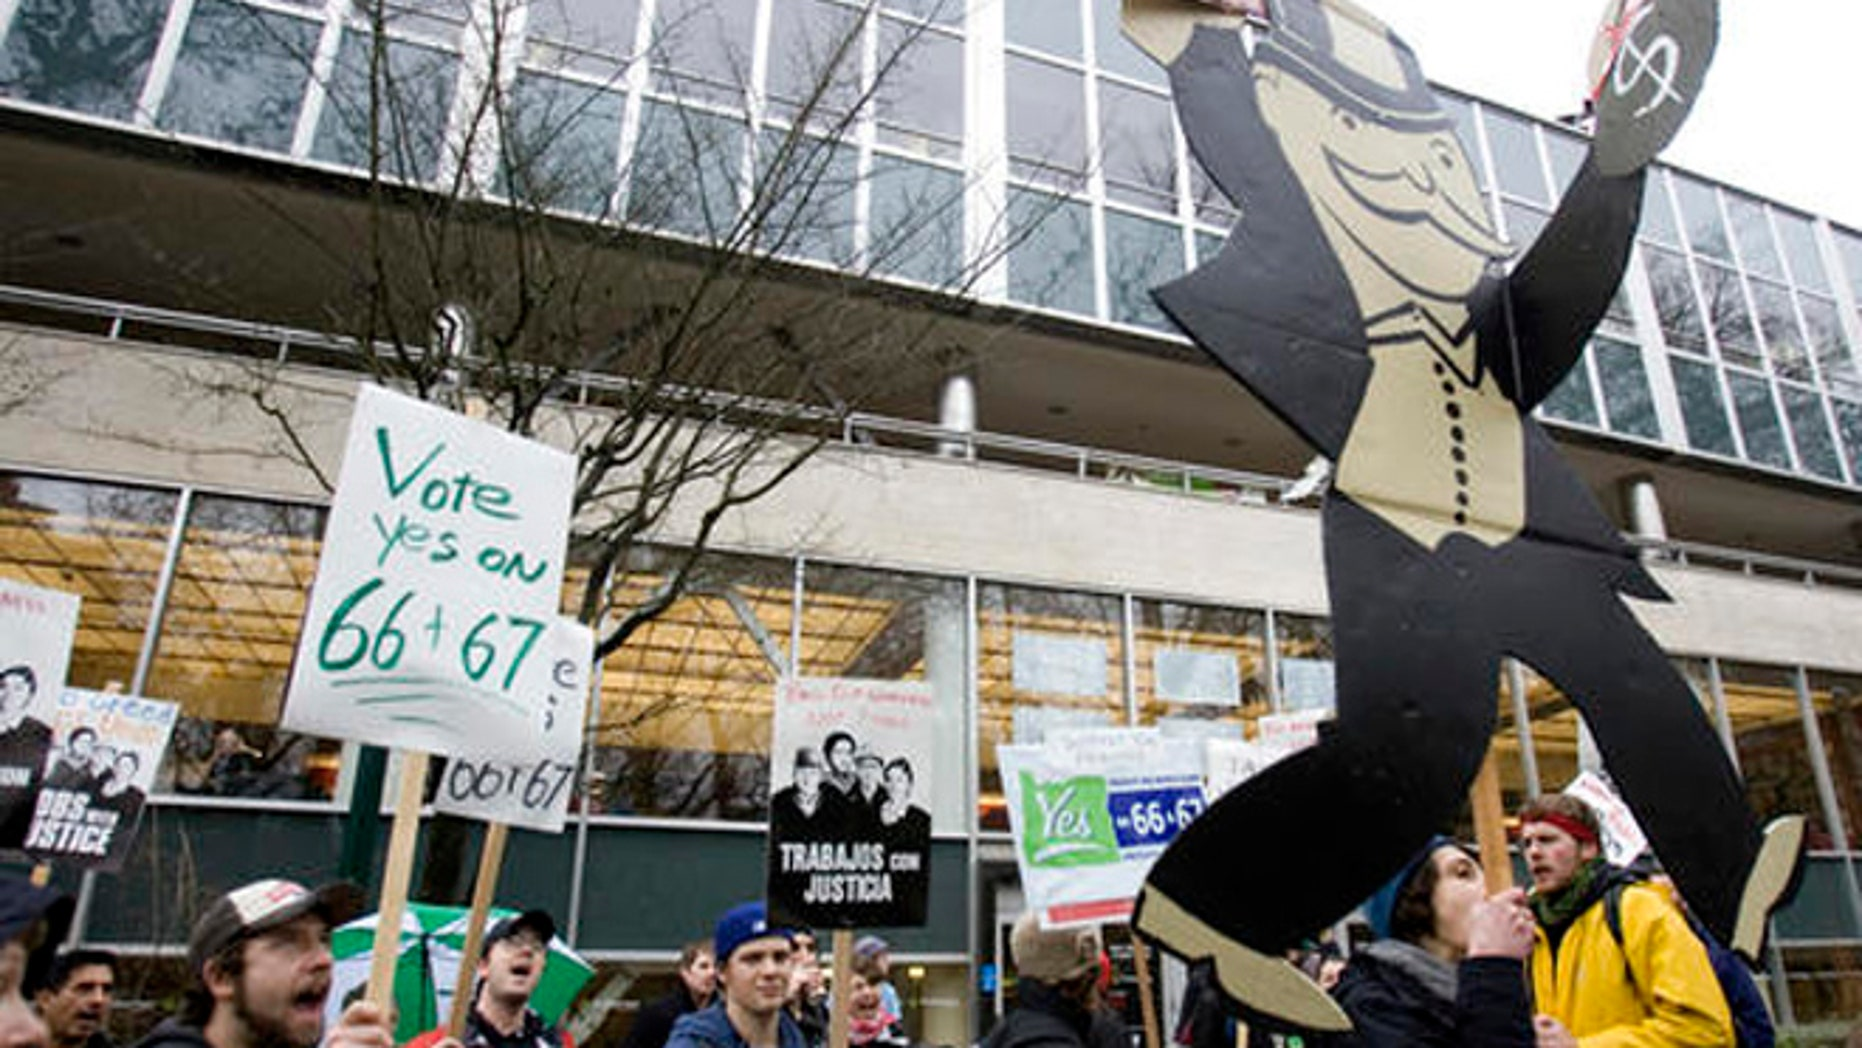 In this Jan. 22, 2010 file photo, supporters of Oregon's Measures 66 and 67, designed to raise taxes on high-income earners and corporations, hold a rally in Portland, Ore.